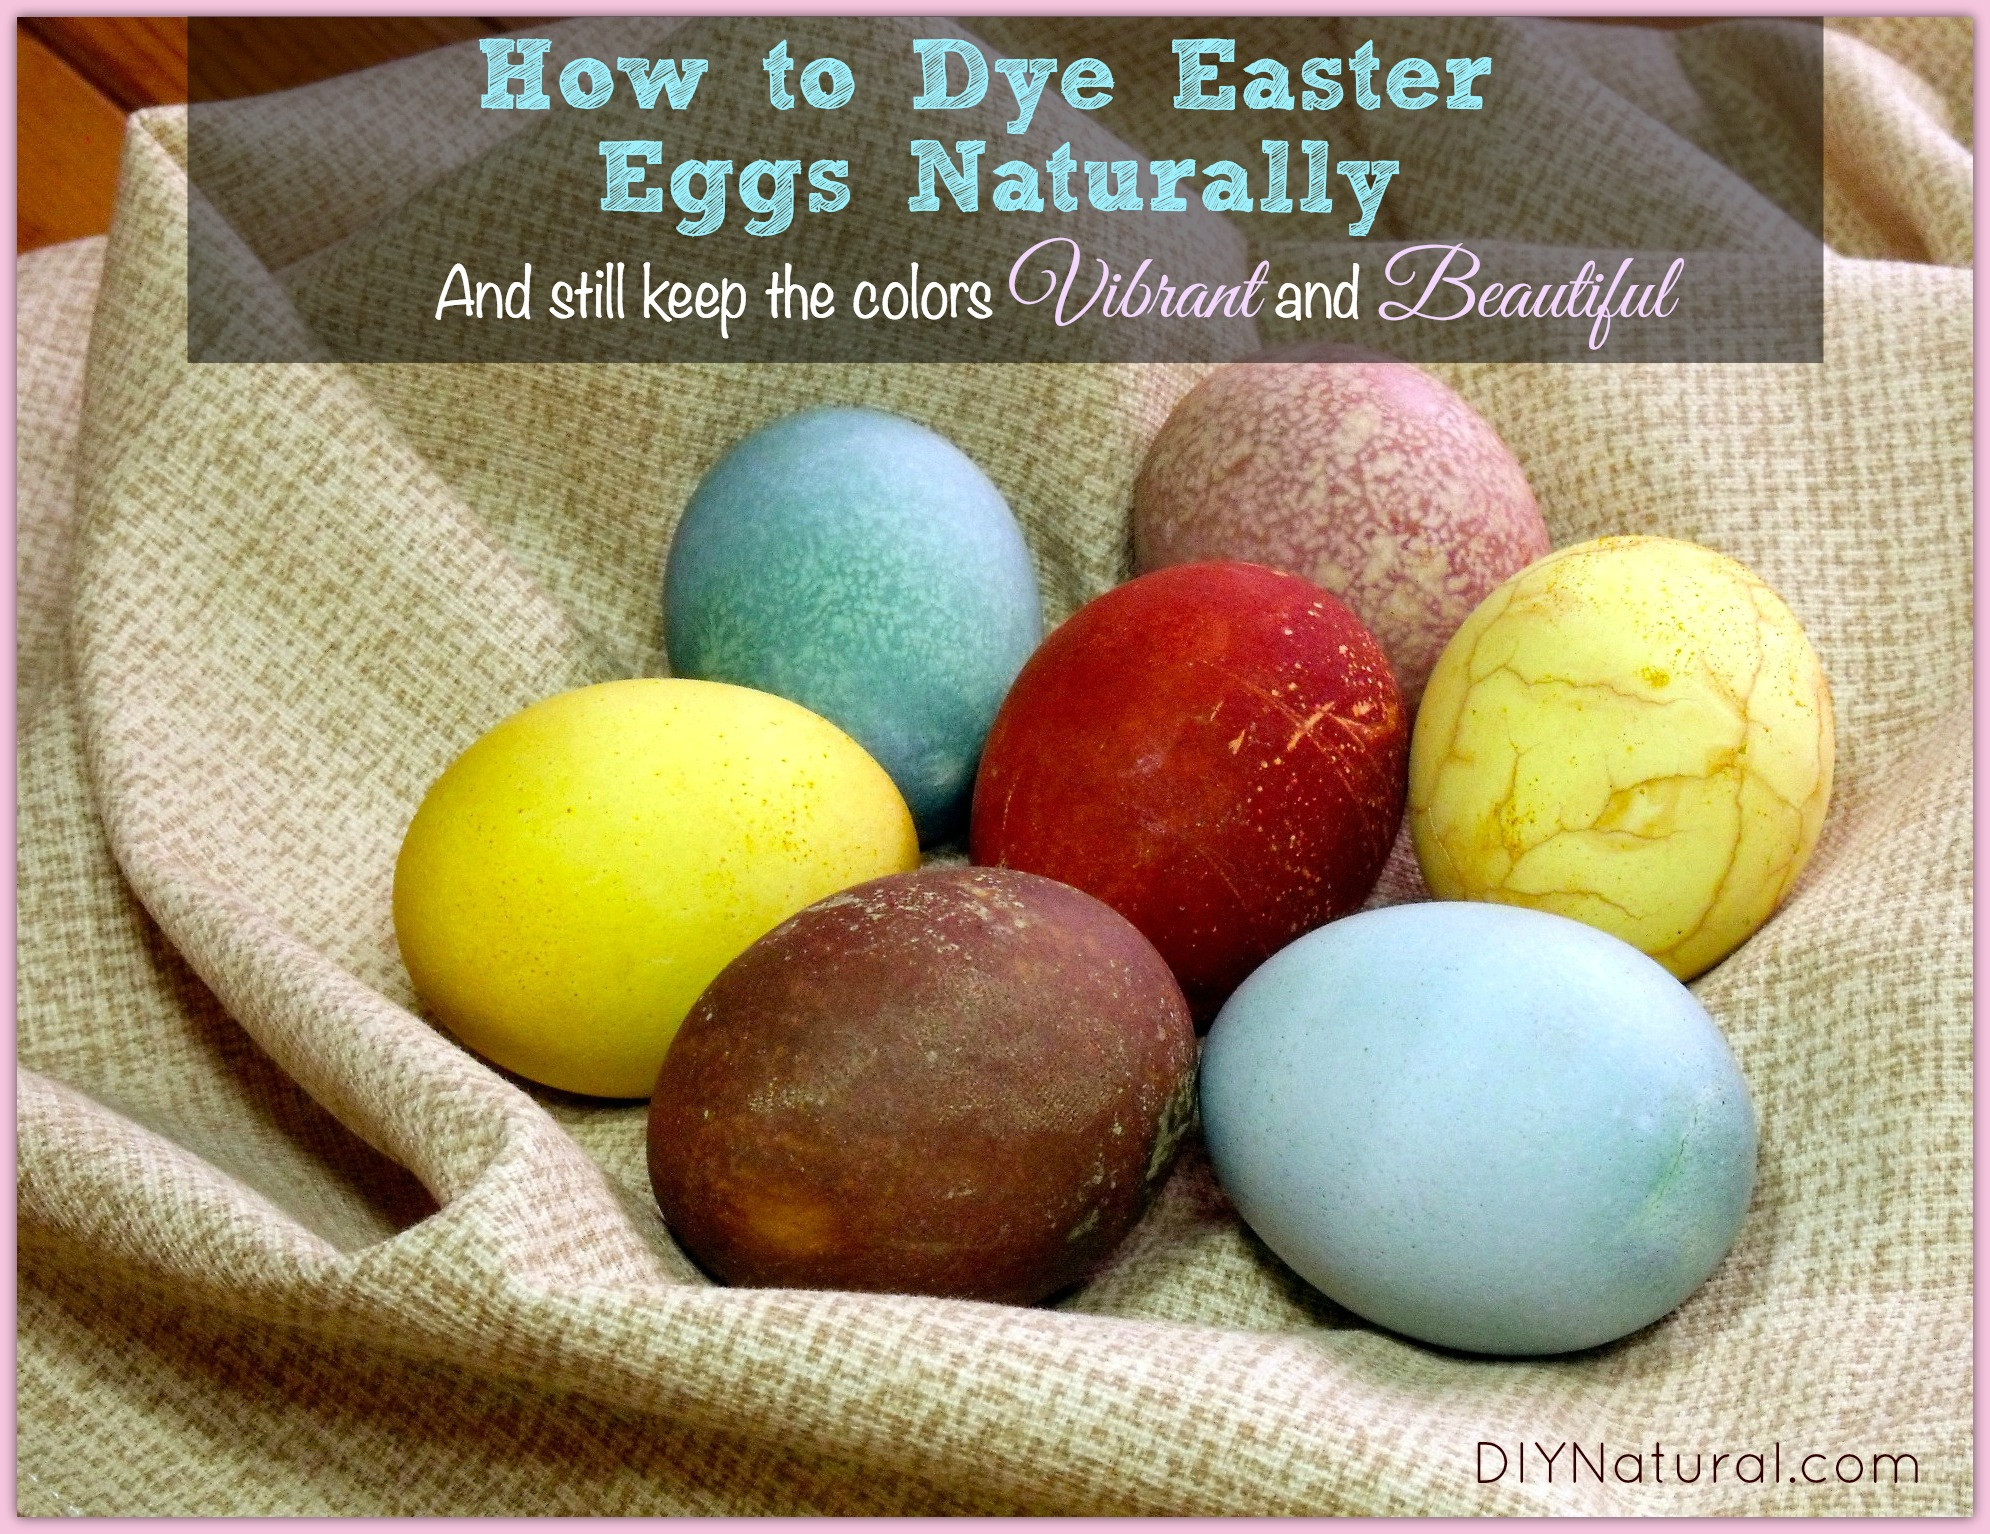 dying easter eggs naturally is an awesome family project